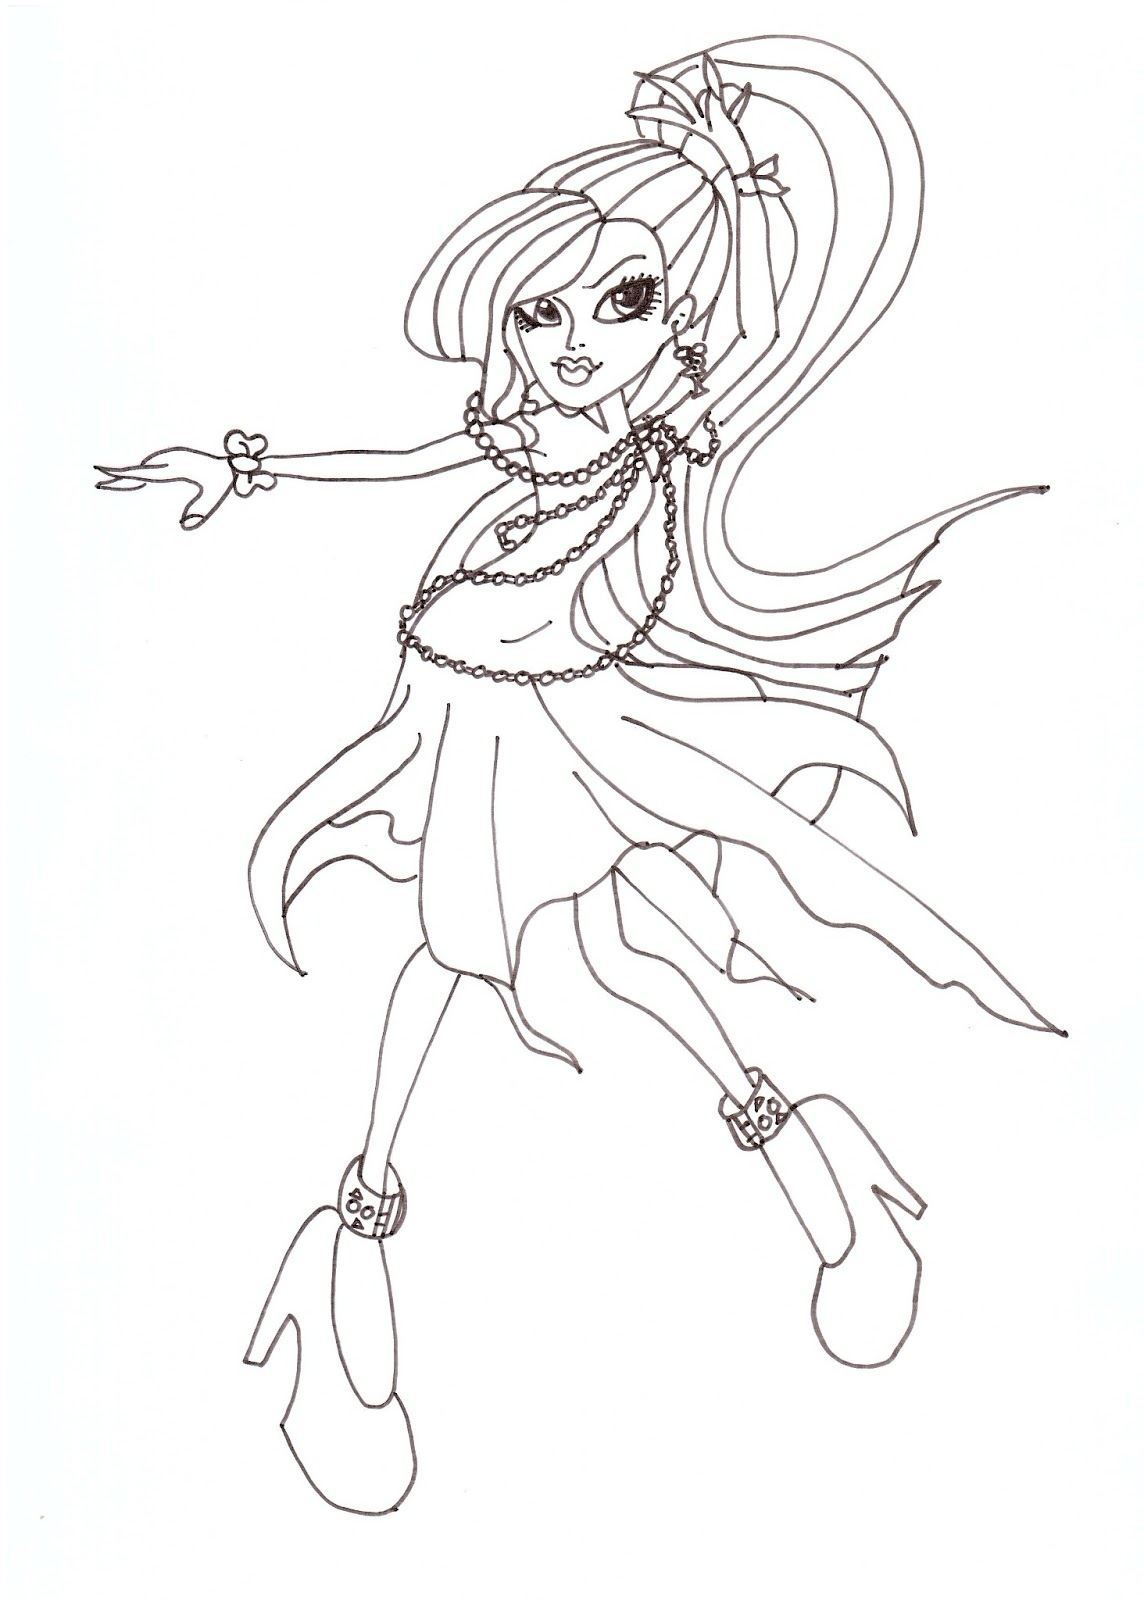 Free Printable Monster High Coloring Pages: Spectra Dot